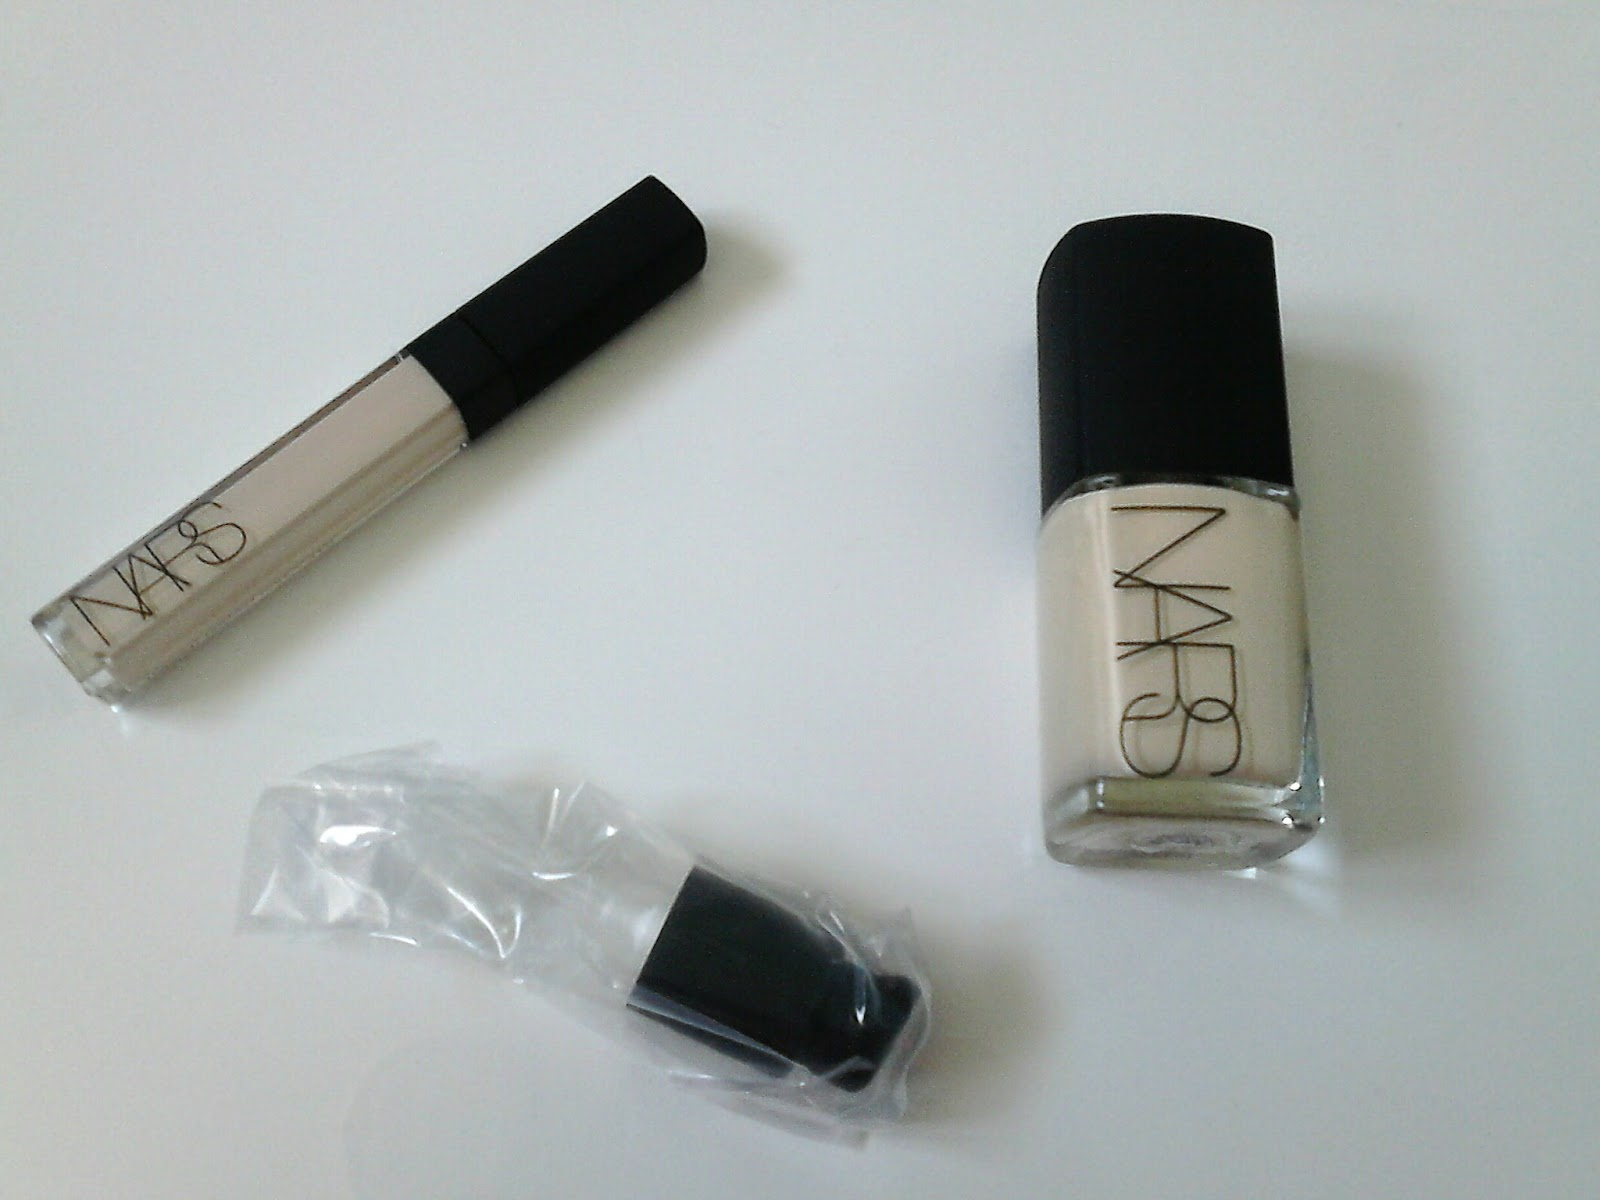 Nars Sheer Glow and Radiant Creamy Concealer